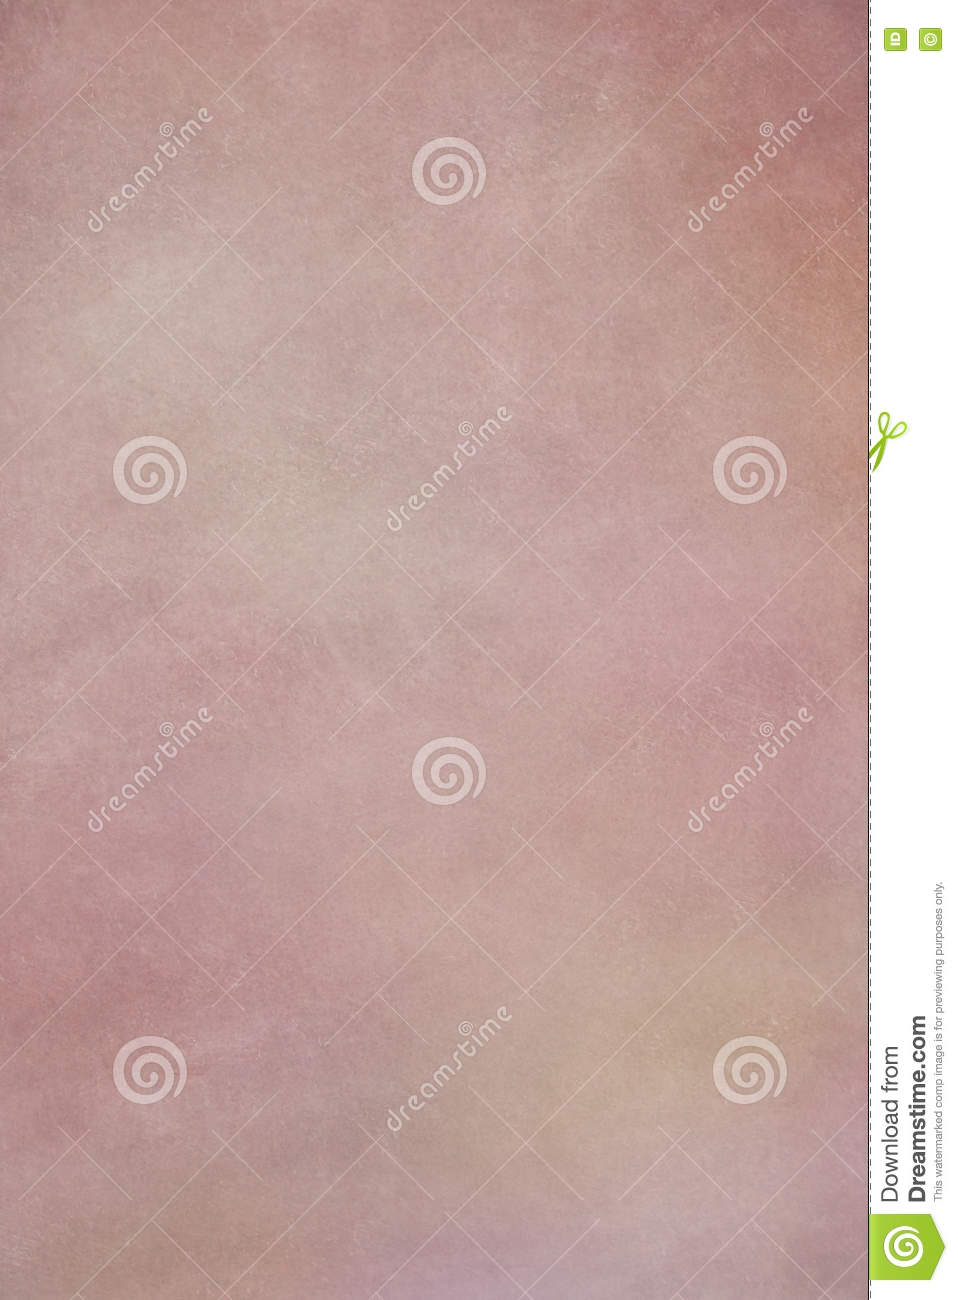 pink abstract hand painted vintage background stock image image of